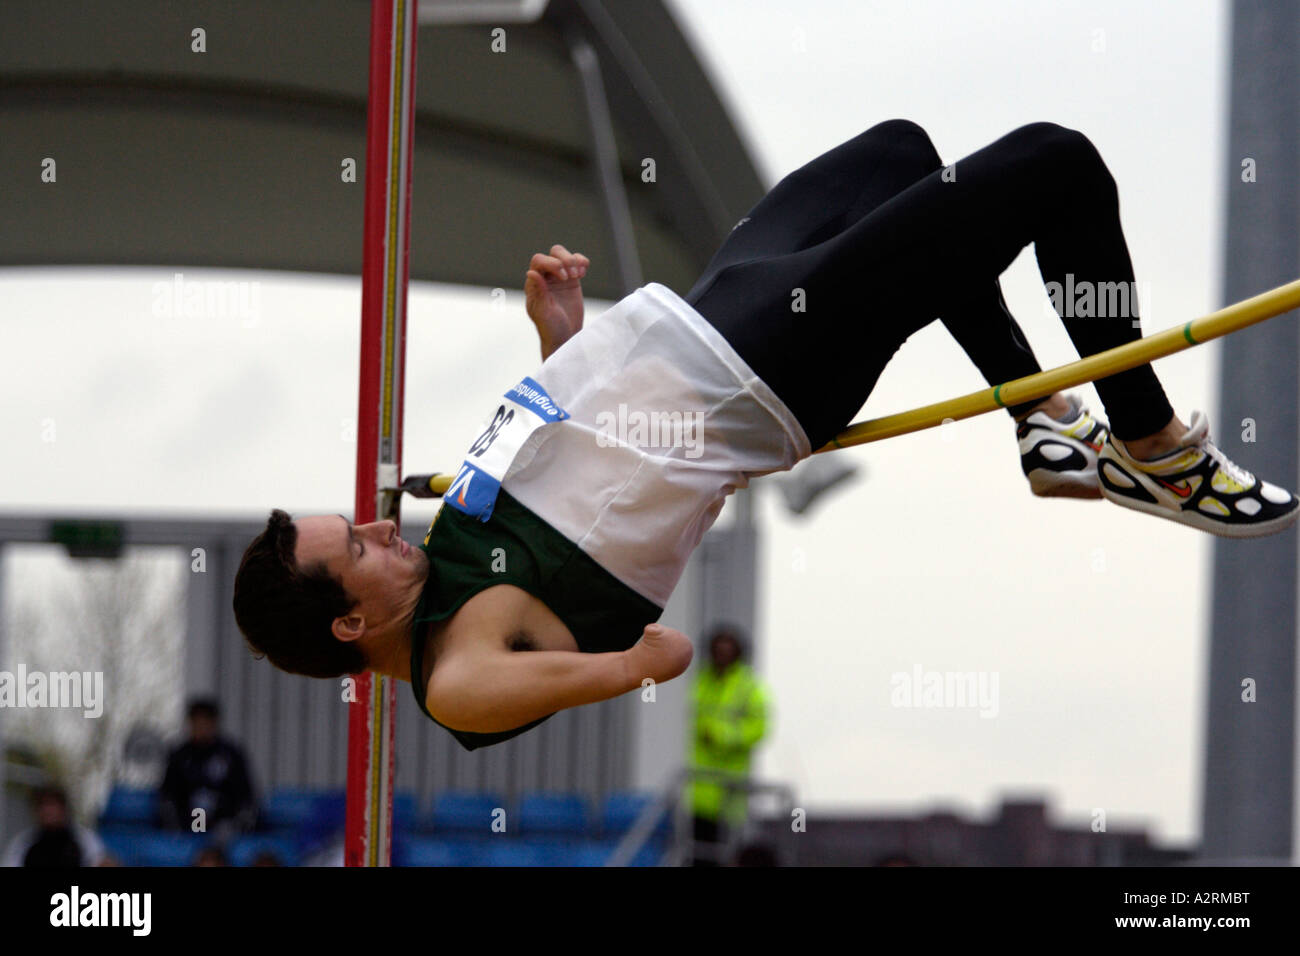 David Roos of South Africa competes in the men s F46 High Jump competition Stock Photo